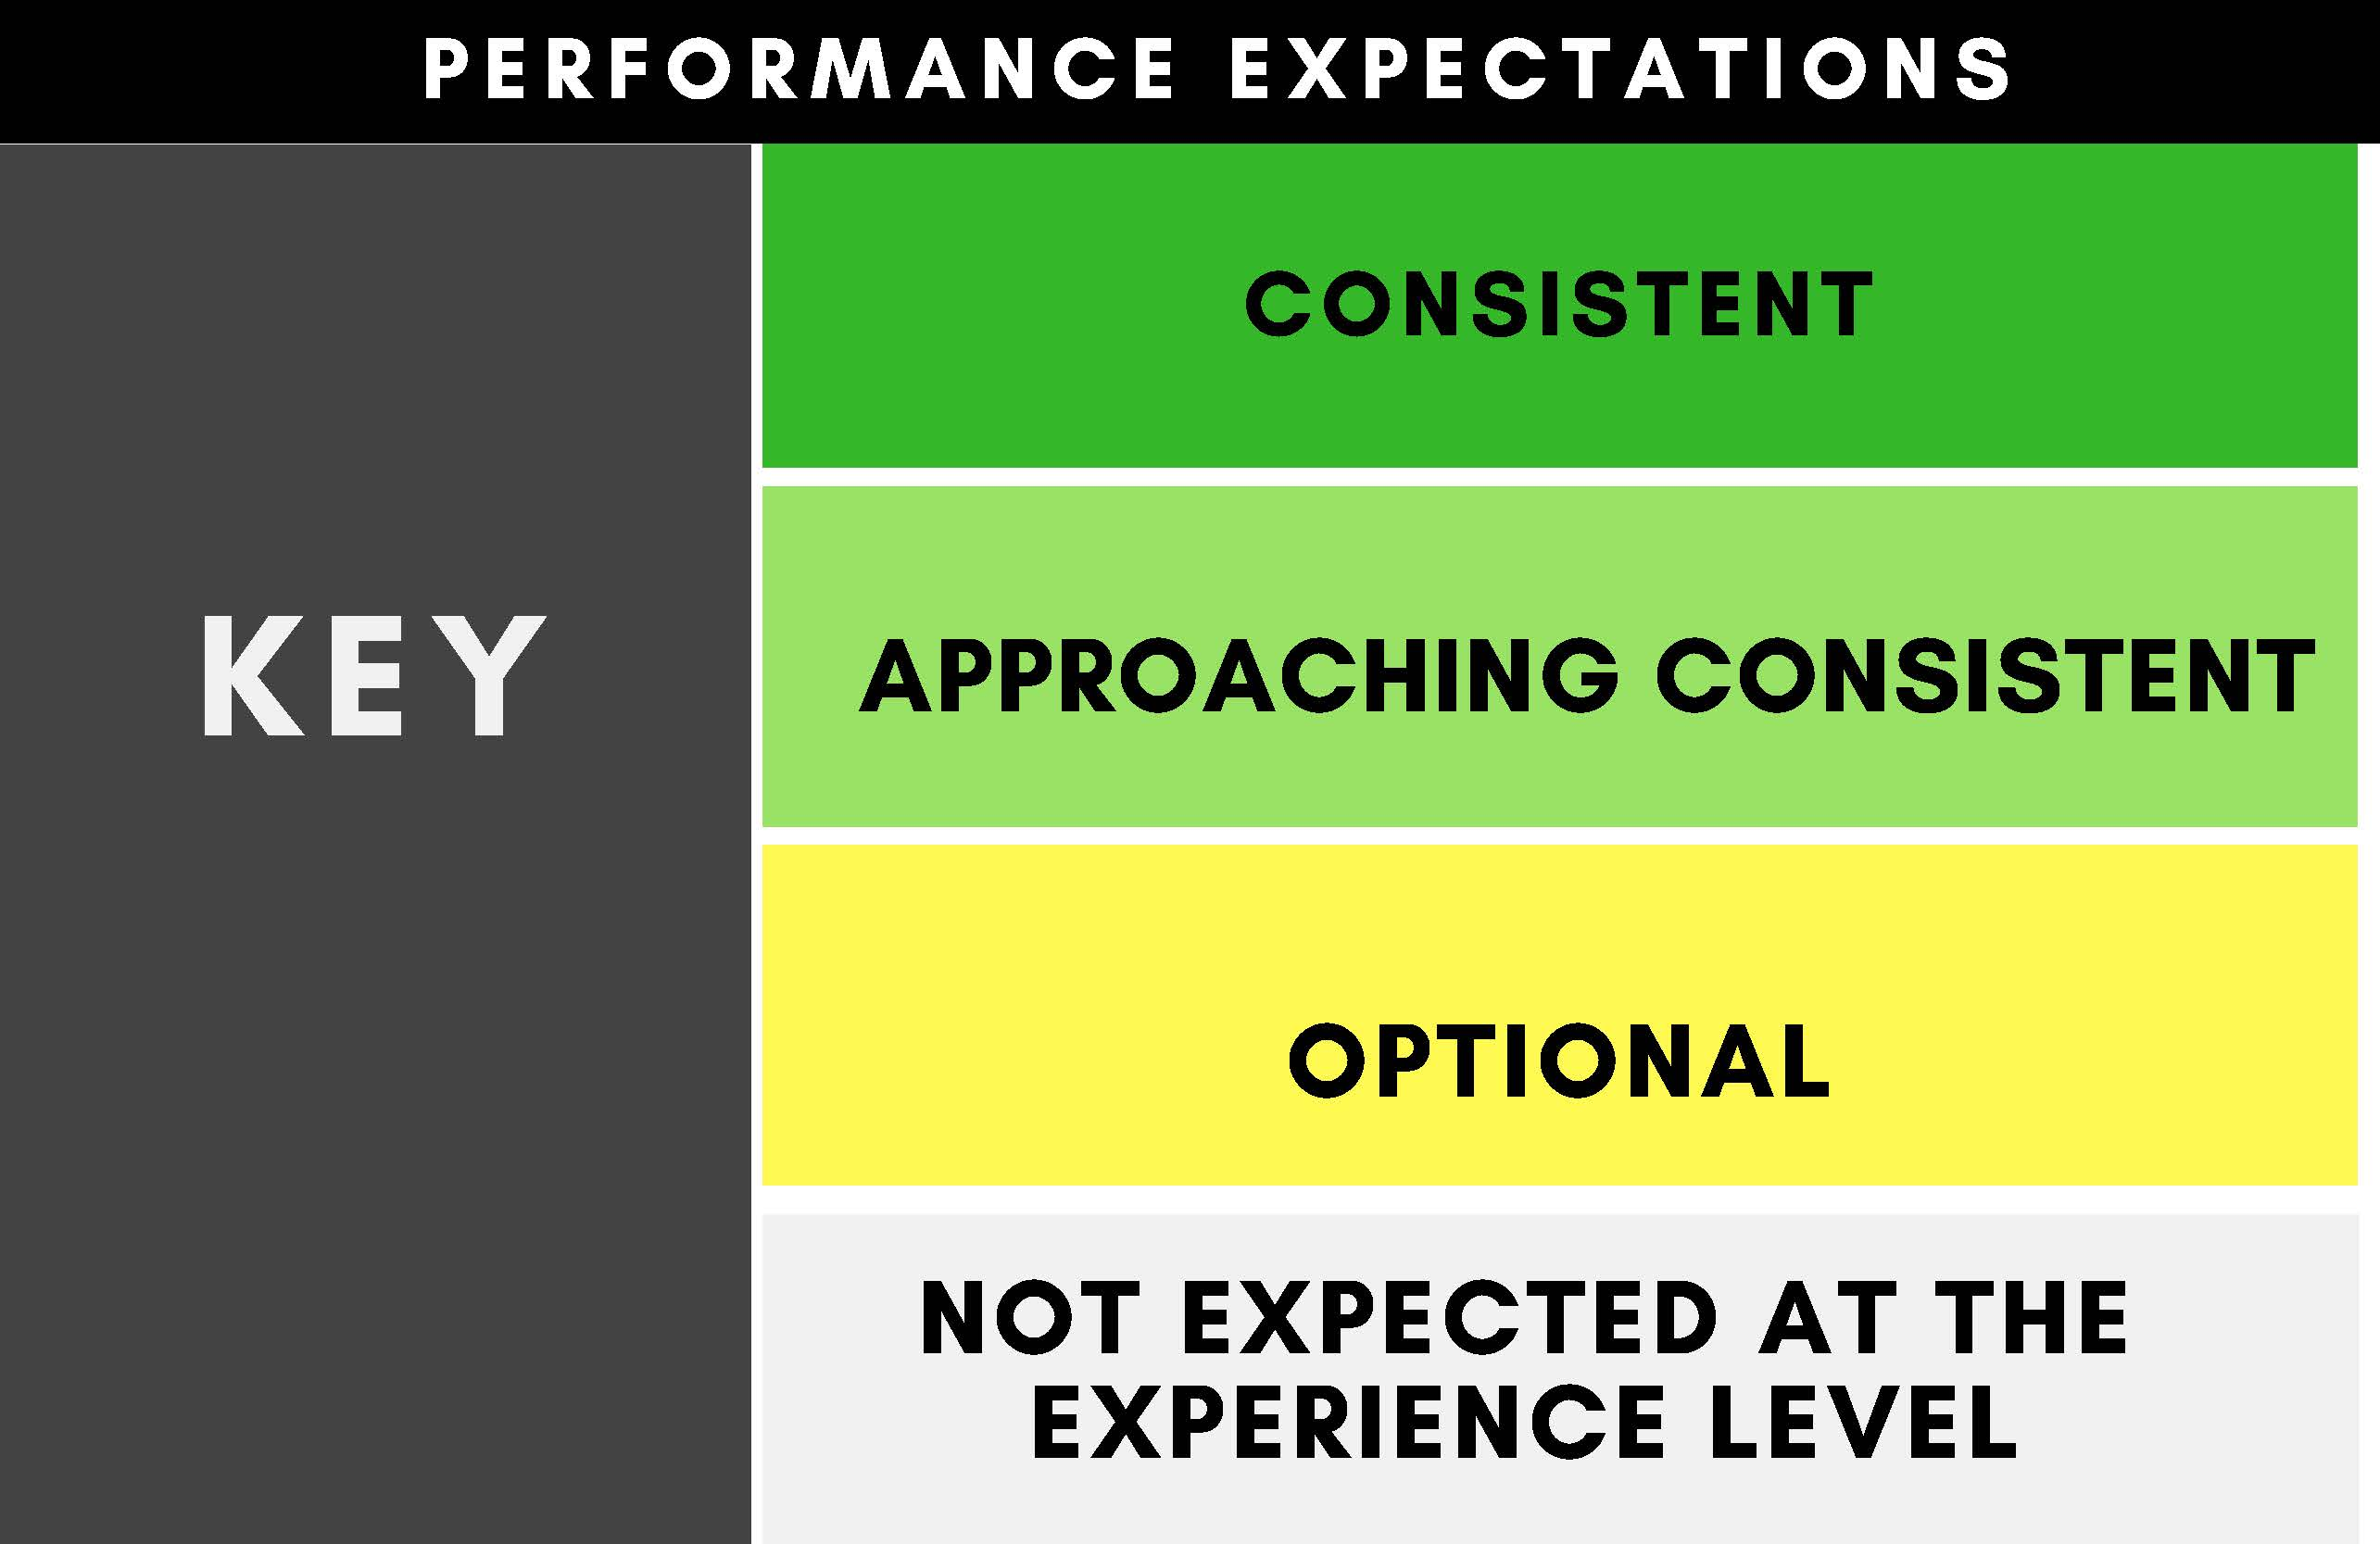 Key_PerformanceExpectations.jpg